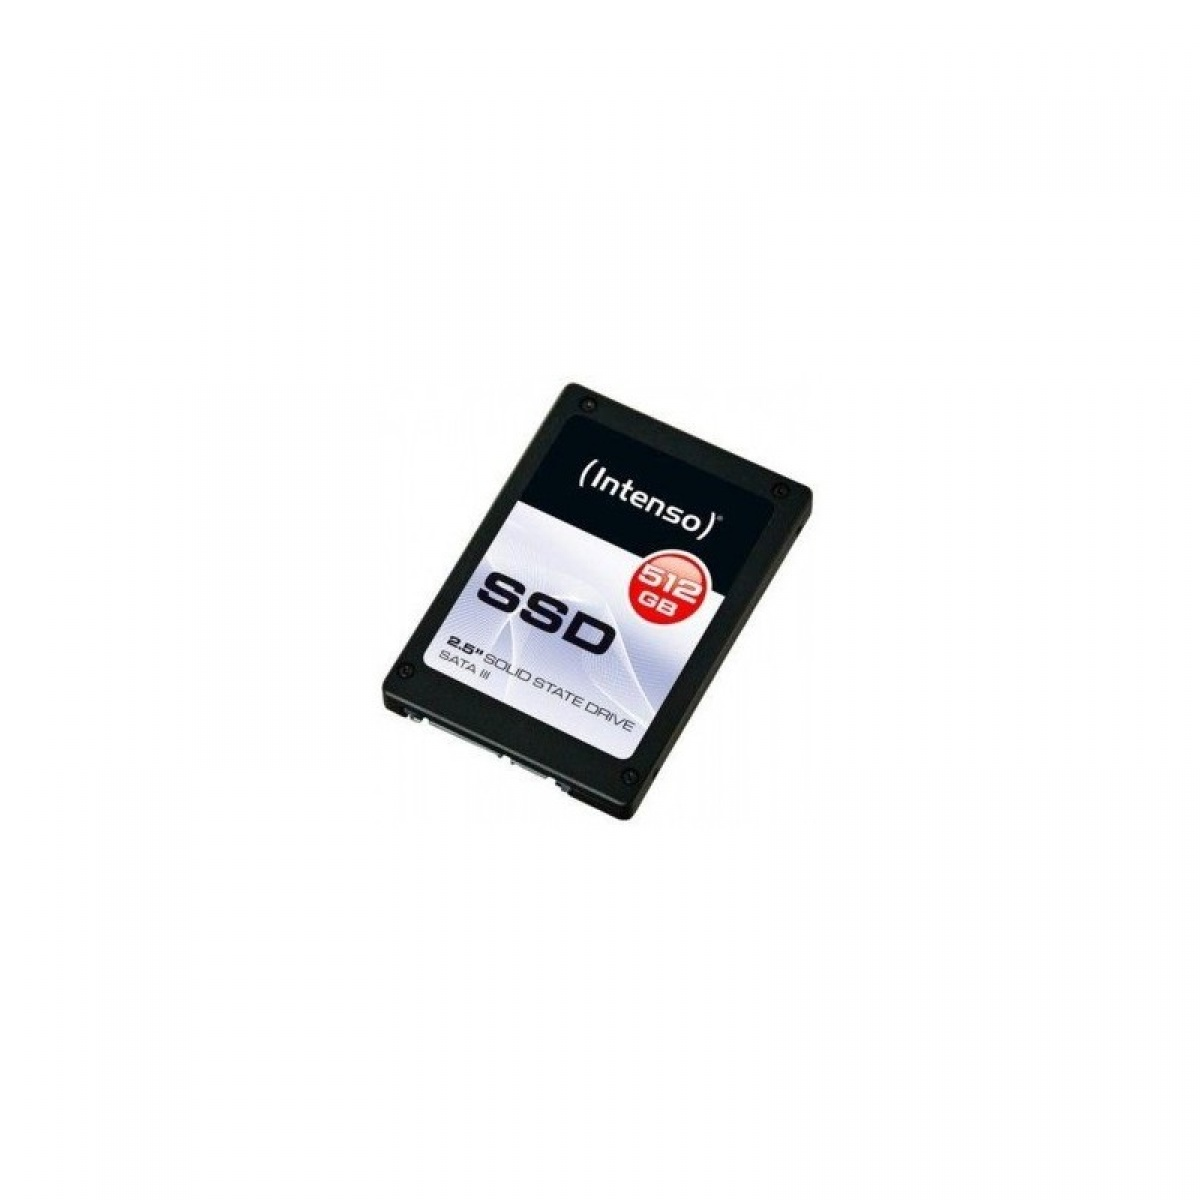 SSD SSD Intenso 3812450, SATA III, 512GB, 2,5 inci, TOP, 520/490MB/s